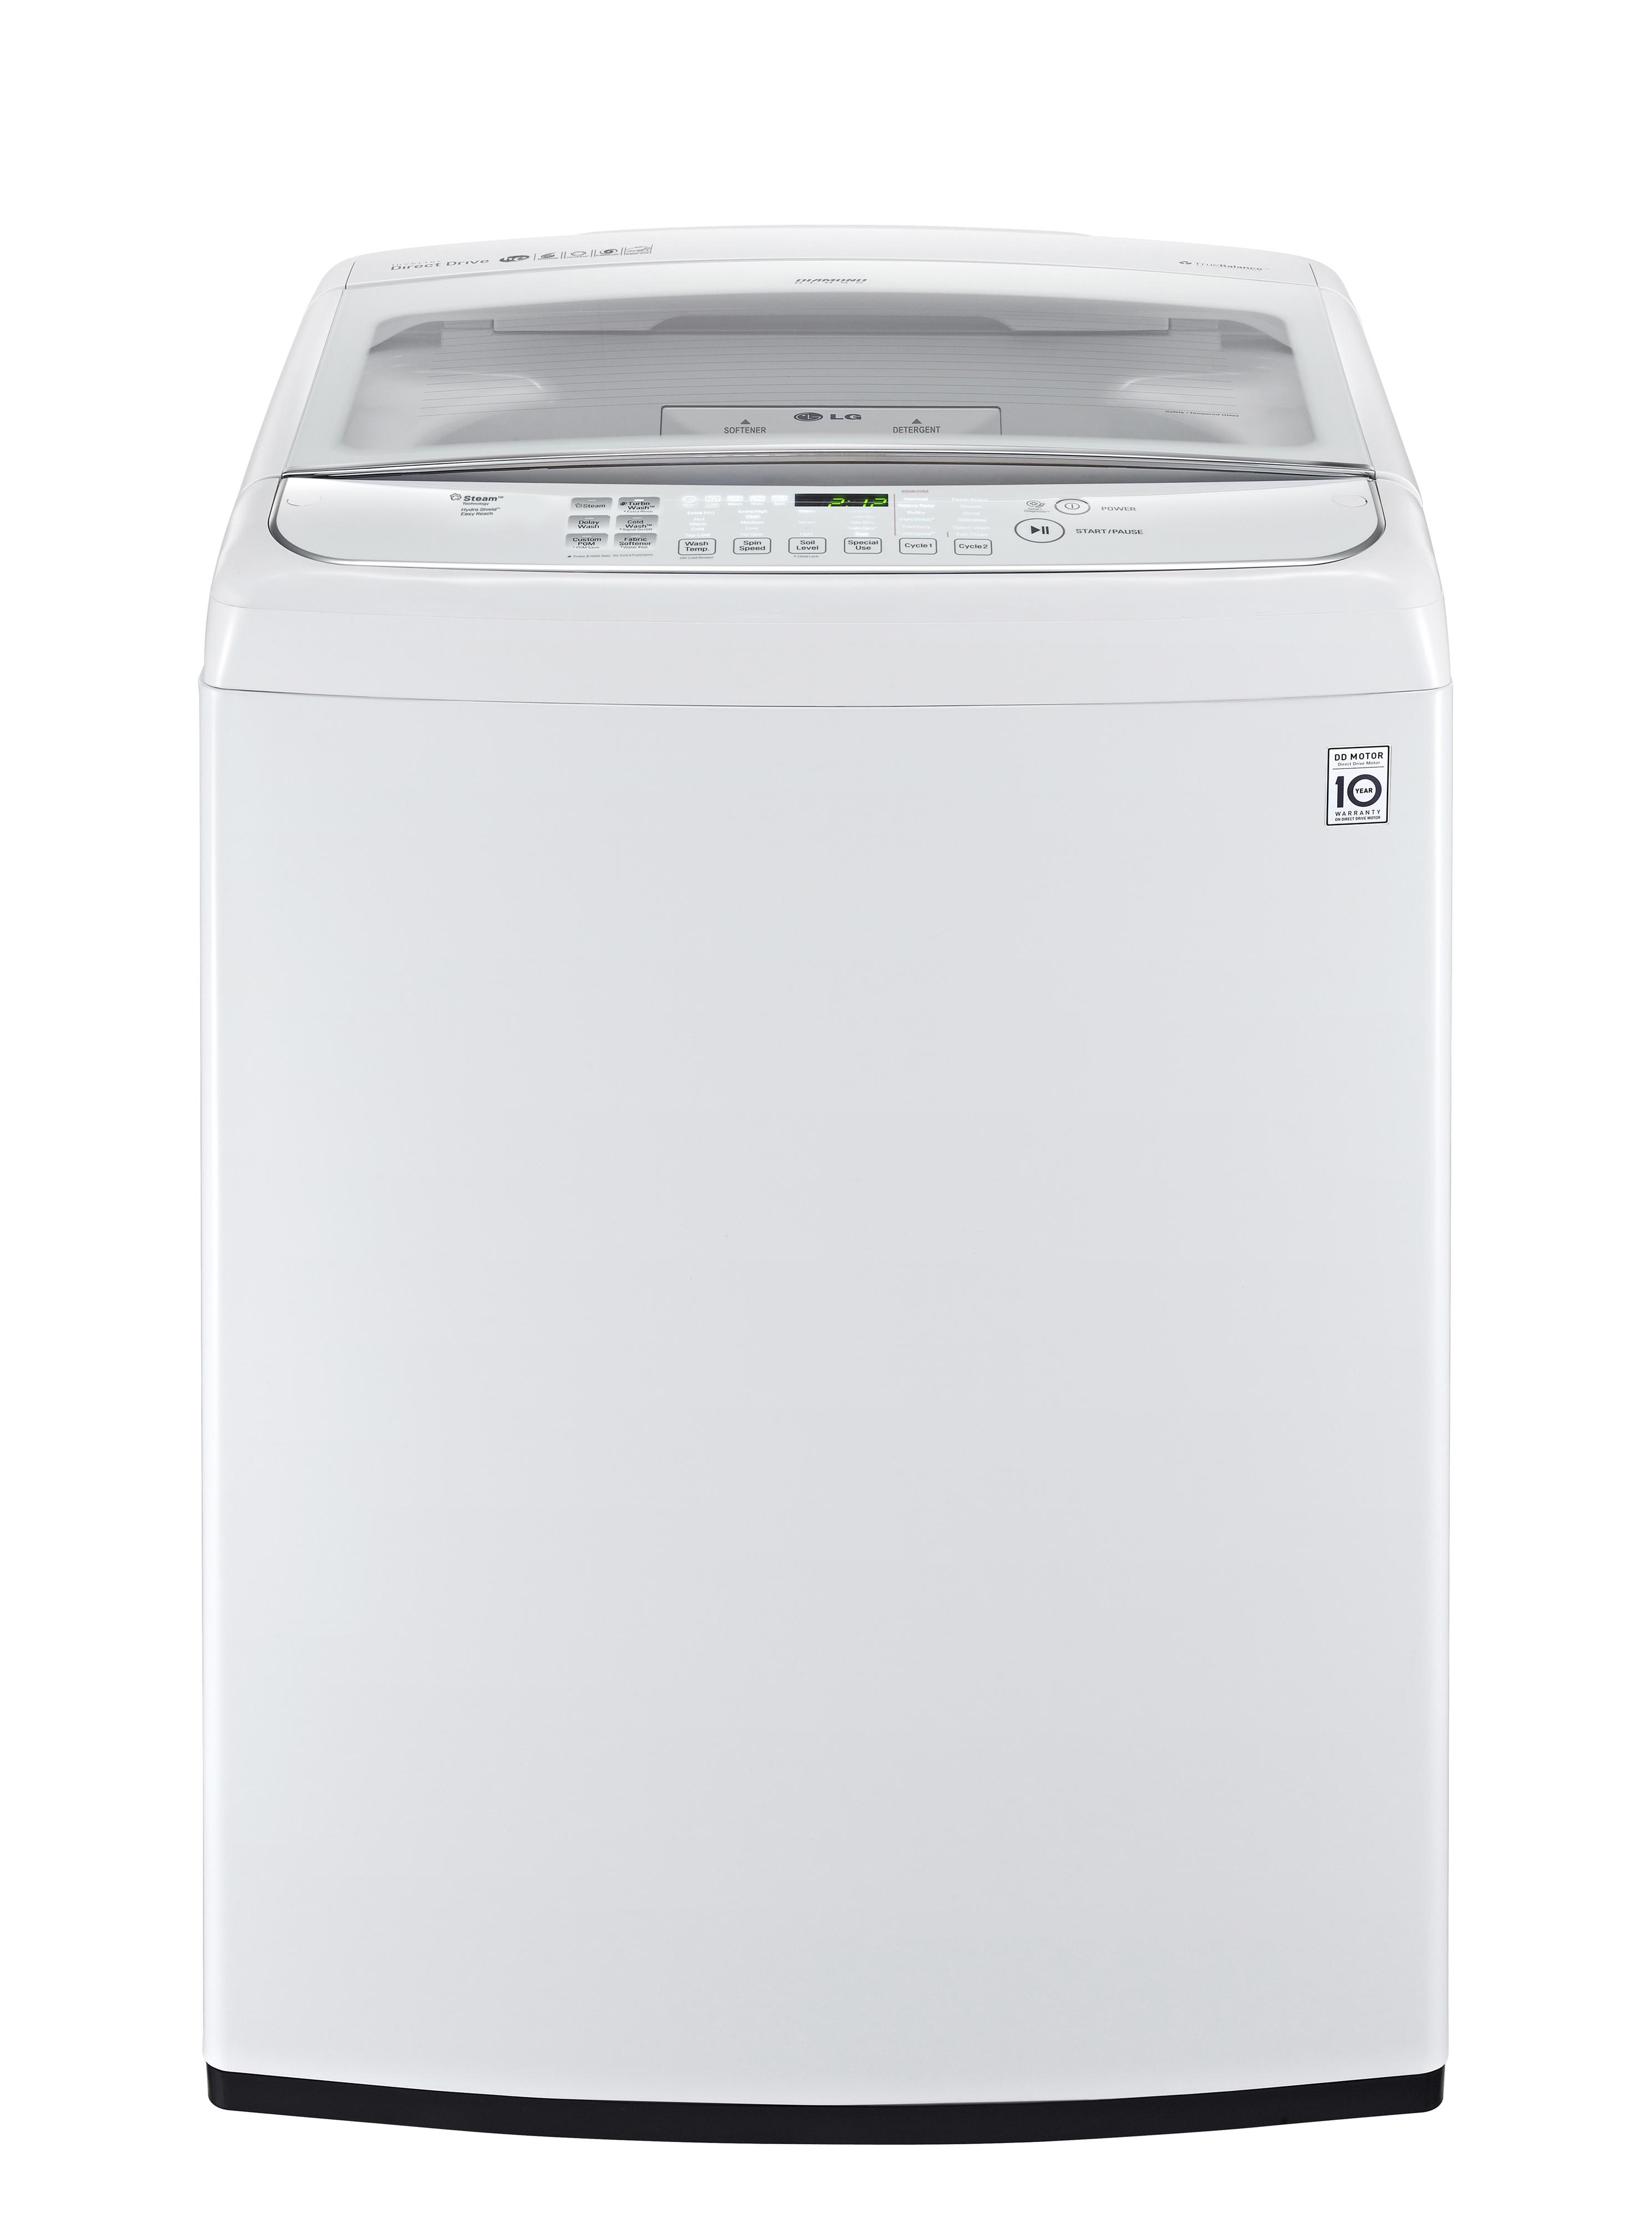 LG Appliances Washers 5.0 Cu. Ft. Top Load Washer - Item Number: WT1801HWA